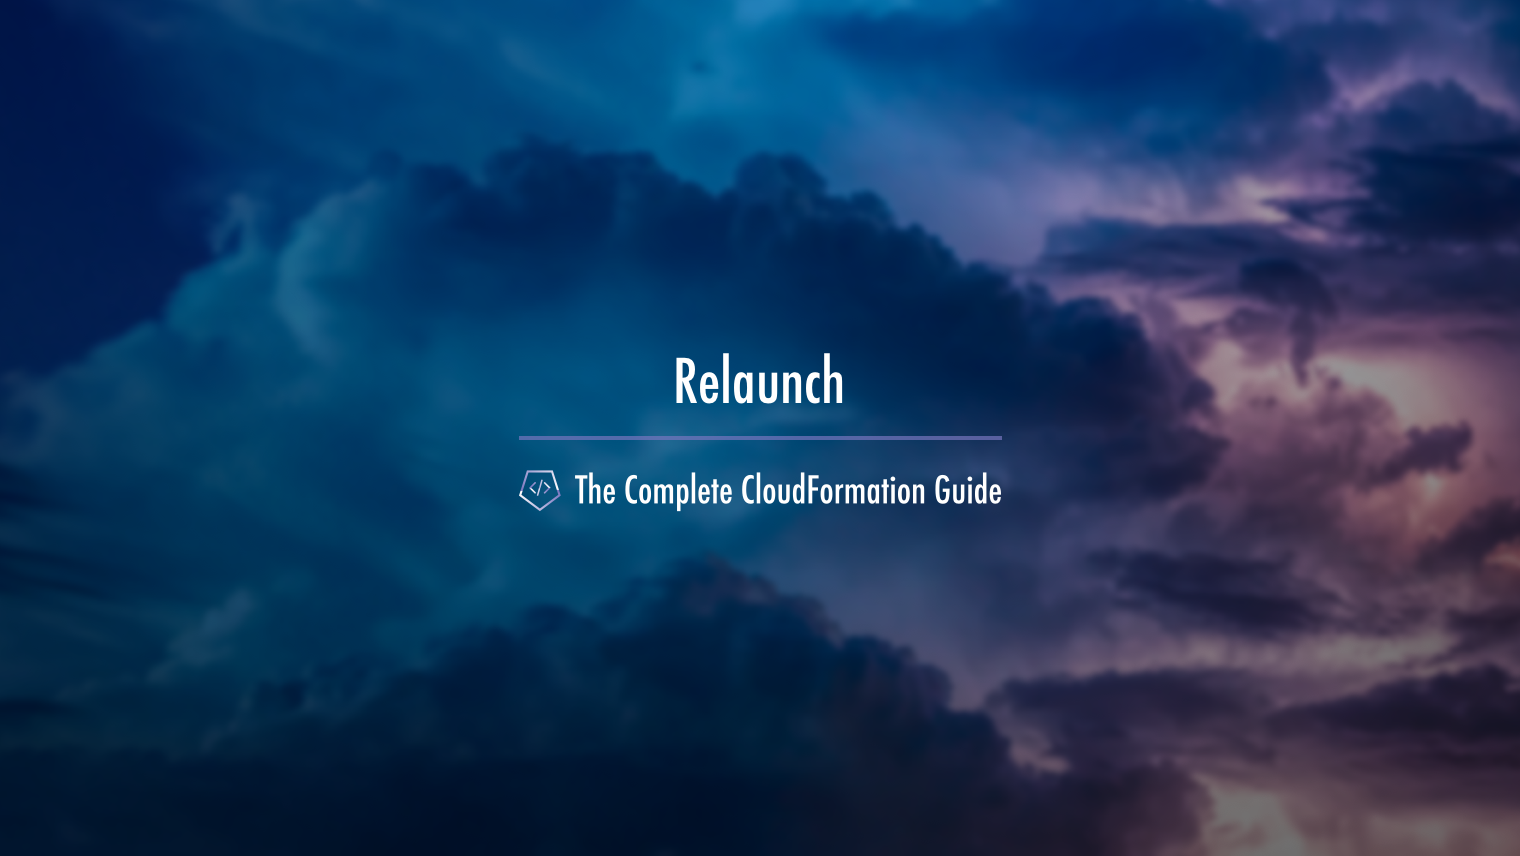 The Complete CloudFormation Guide Relaunch AWS Template